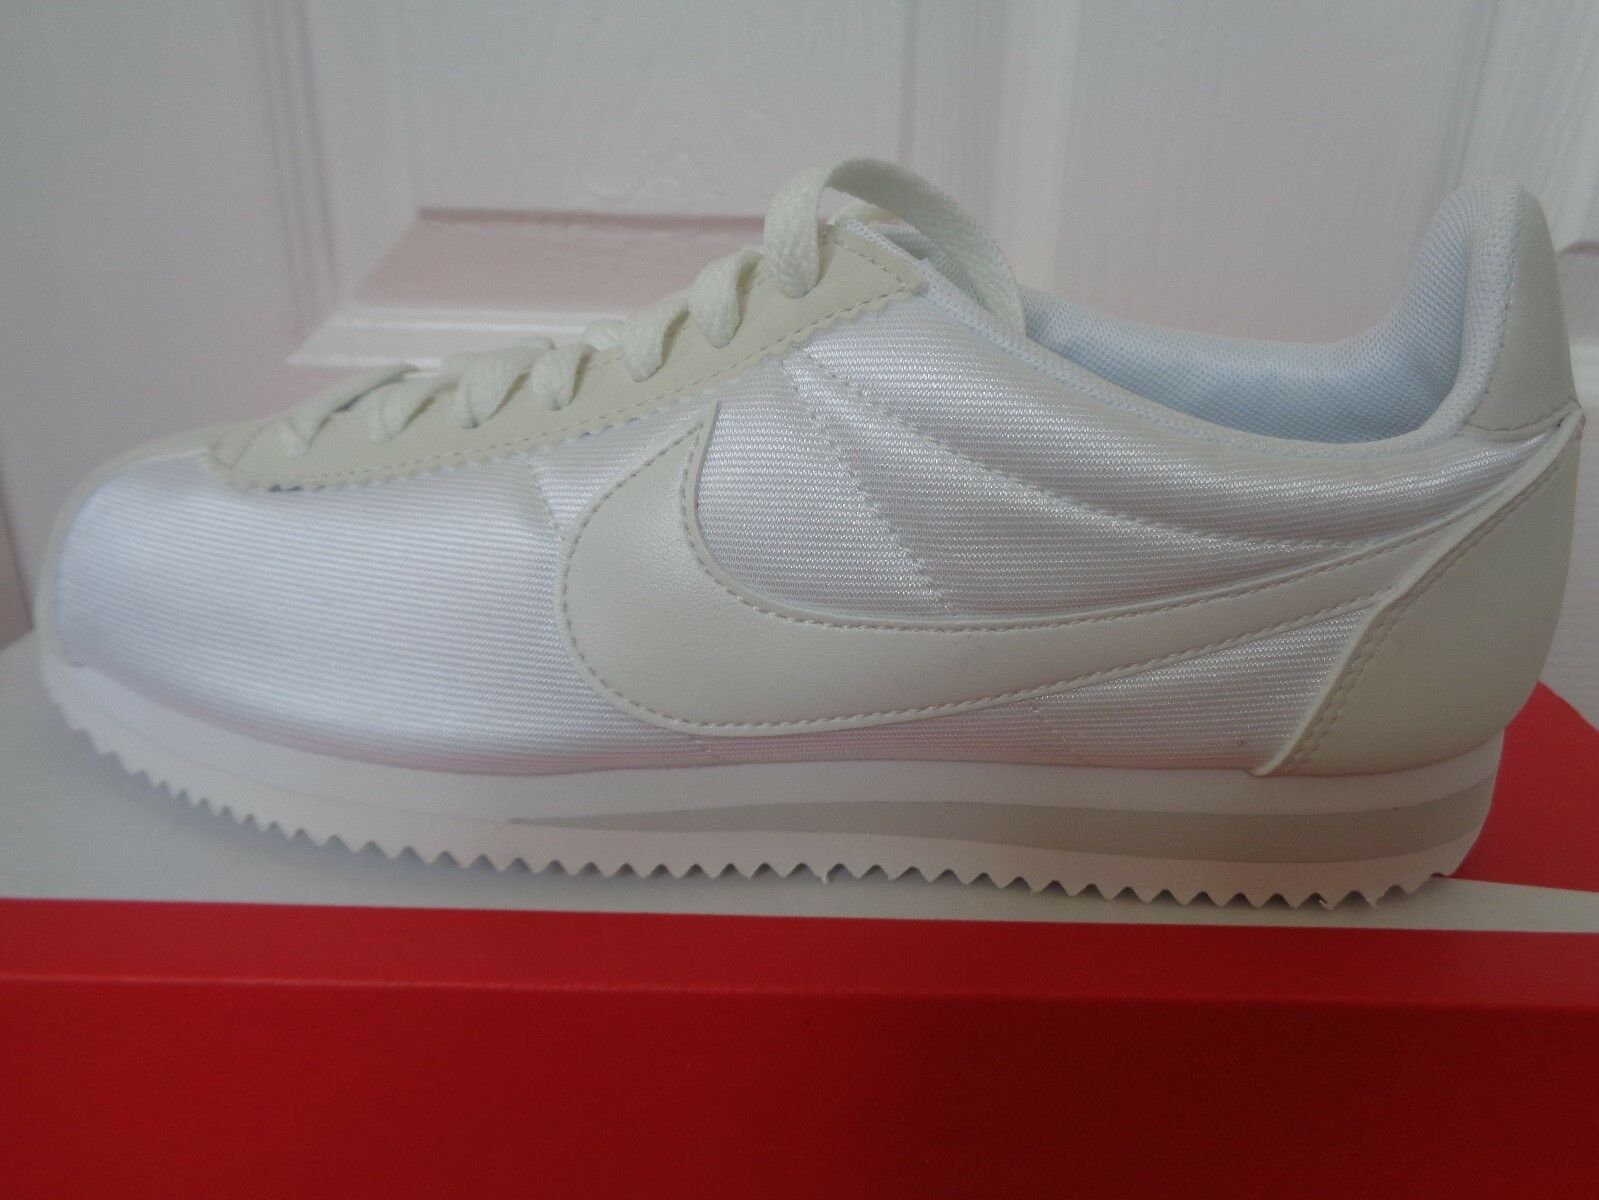 Nike Classic Cortez 15 wmns trainers chaussures eu 749864 103 uk 6.5 eu chaussures 40.5 us 9 NEW a7a576